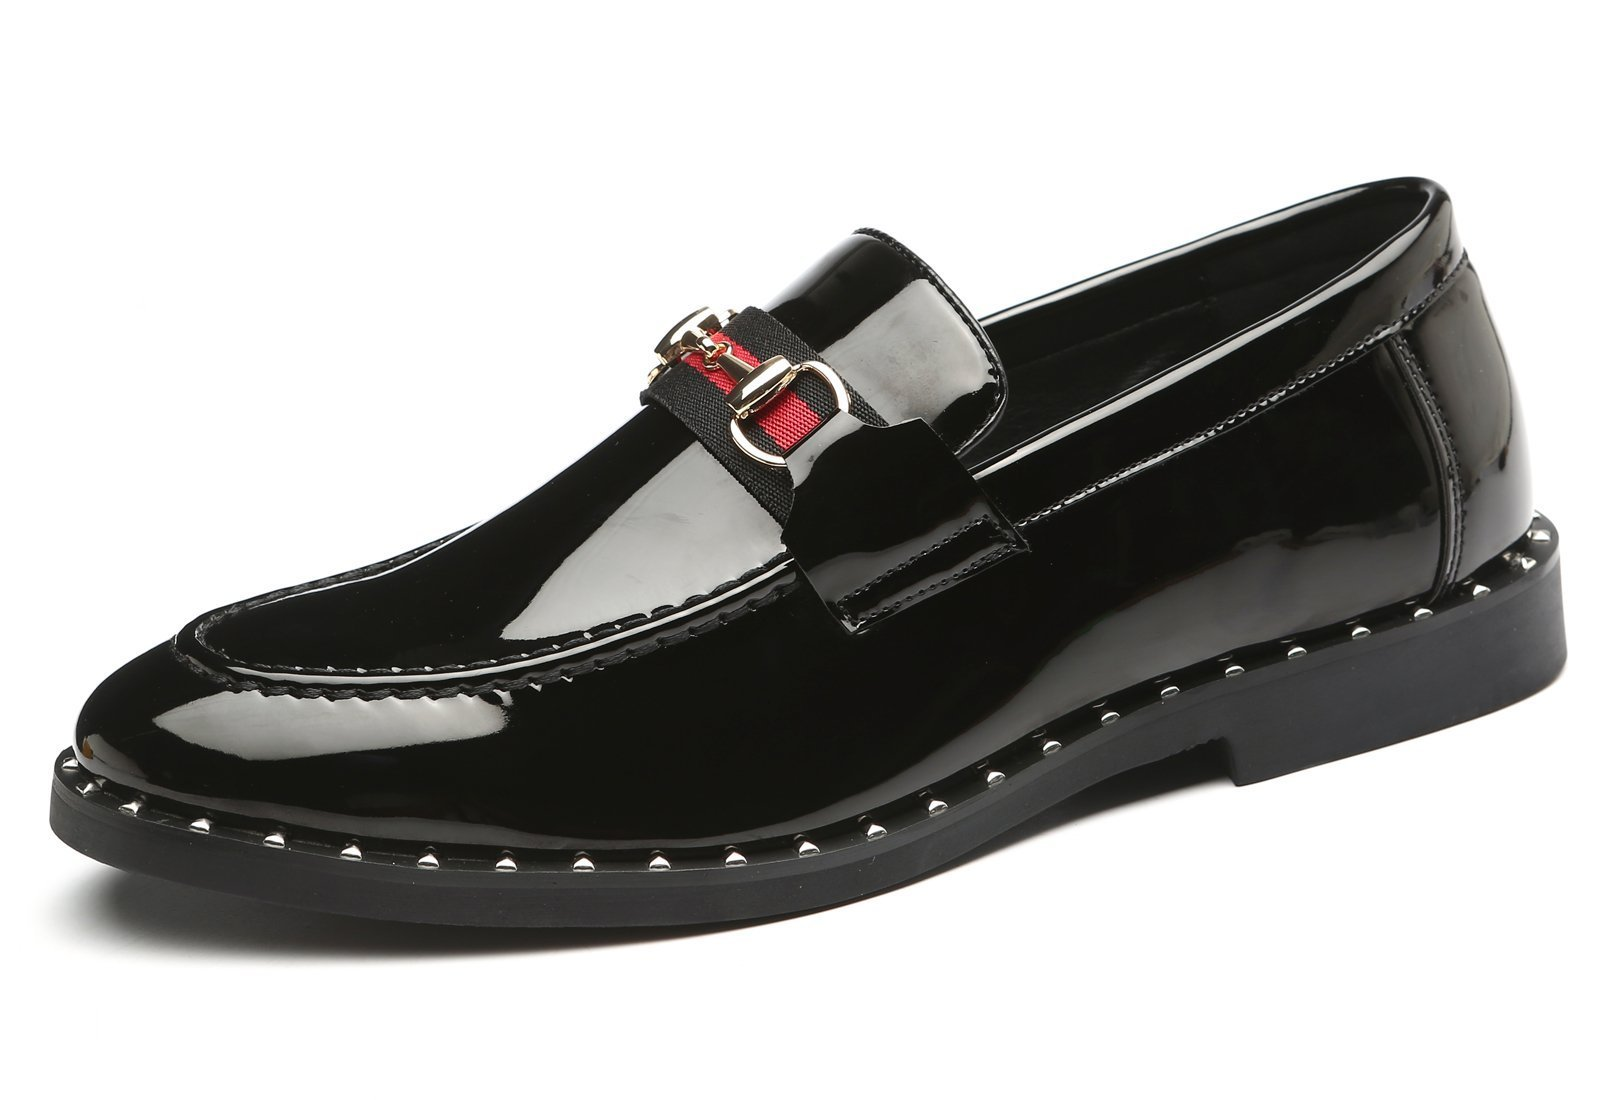 Santimon Loafers Mens Patent Leather Metal Buckle Driving Boat Moccasins Casual Slip on Shoes Black 11 D(M) US by Santimon